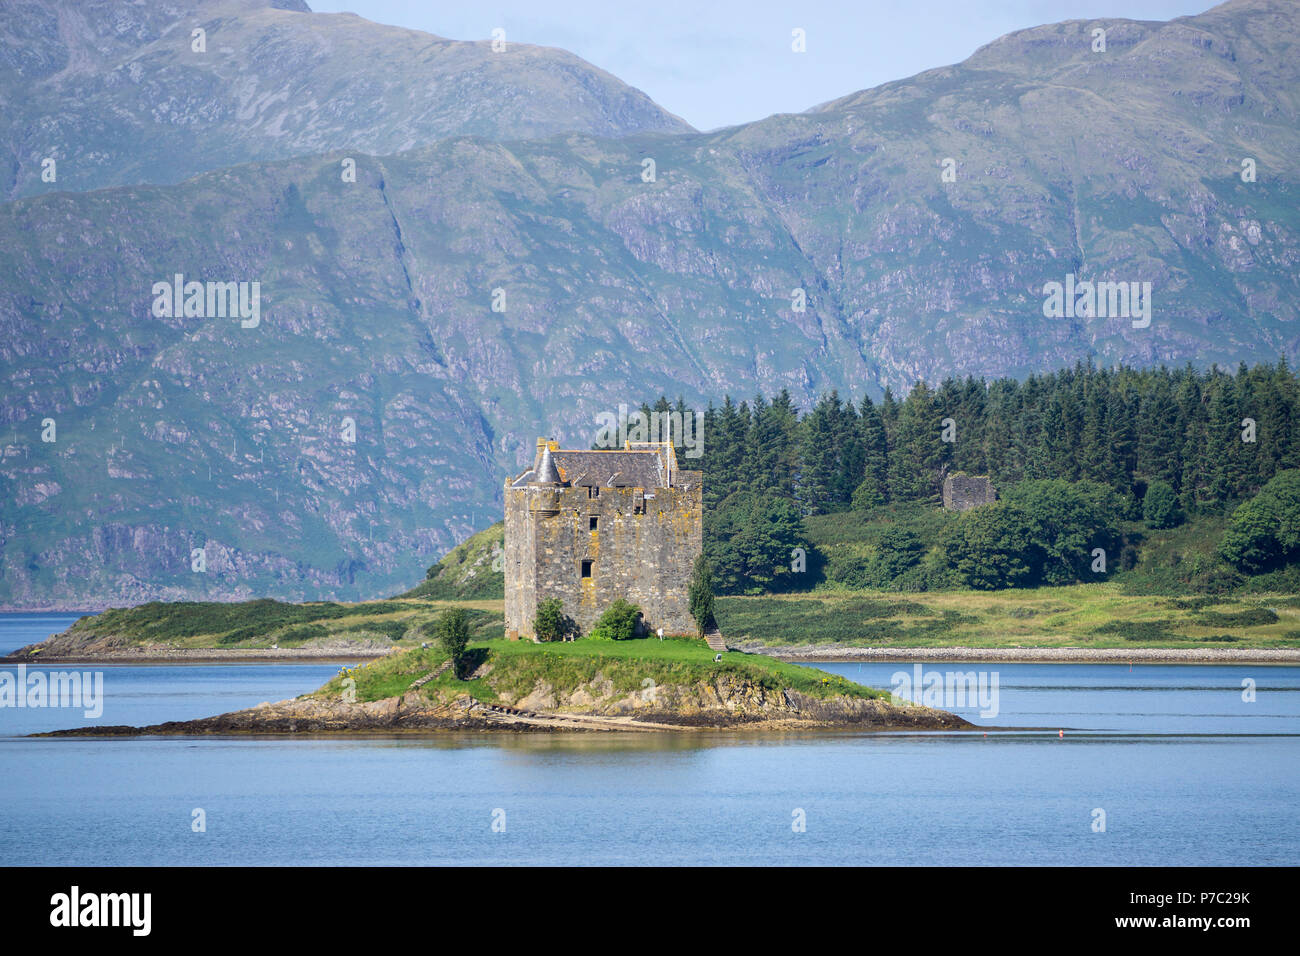 Castle Stalker (Caisteal an Stalcaire) is a four-storey tower house or keep picturesquely set on a tidal islet on Loch Laich, an inlet off Loch Linnhe - Stock Image